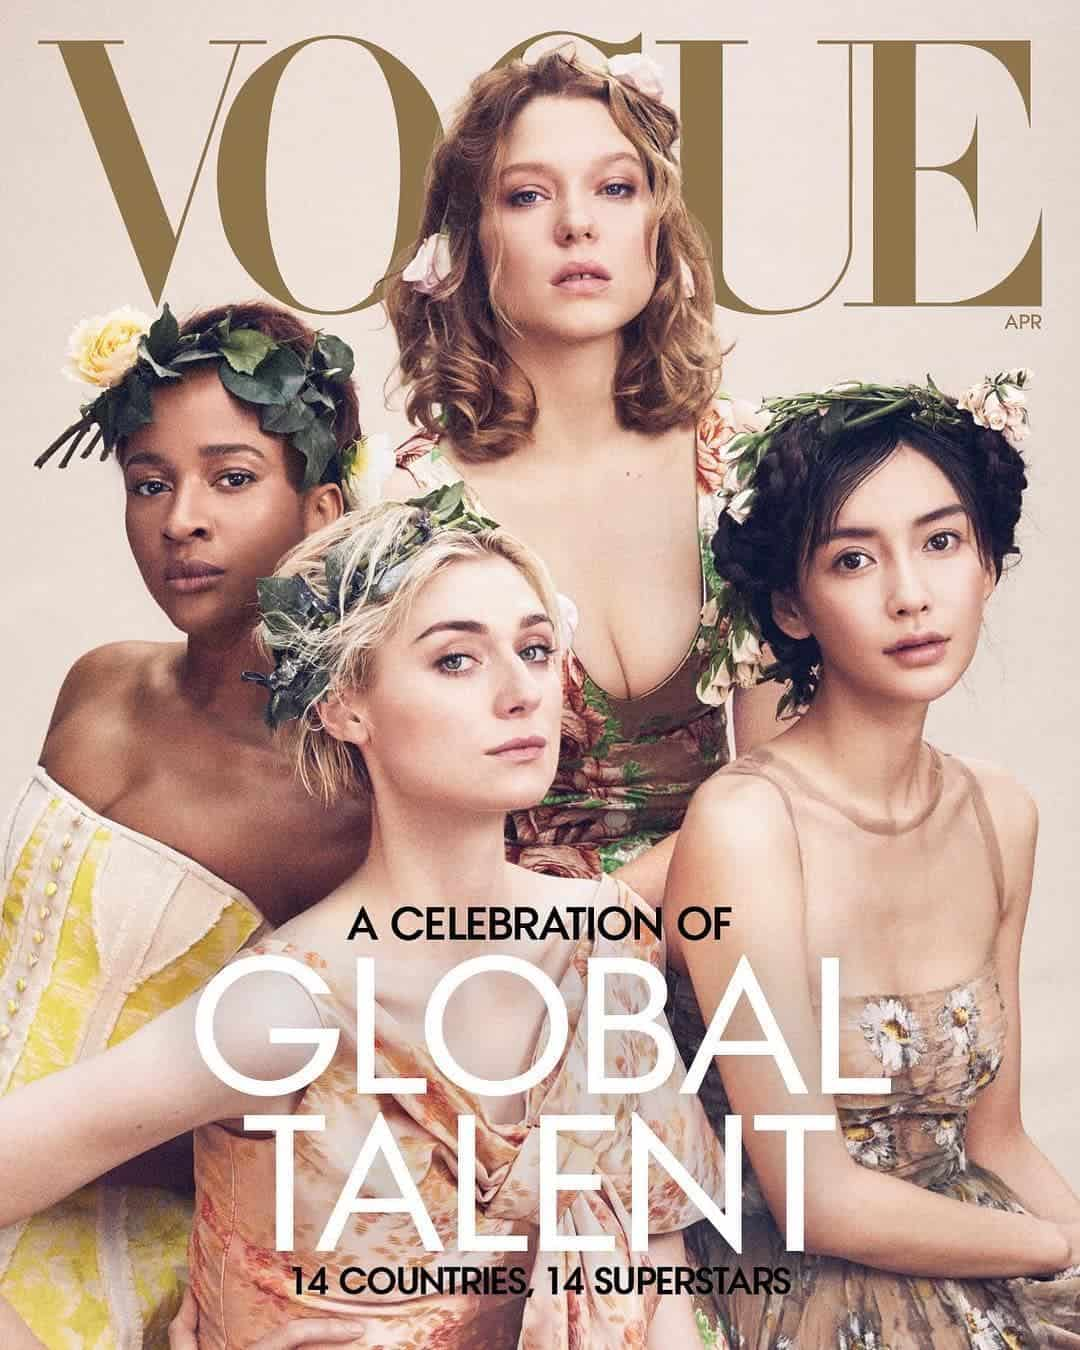 Photo of Adesua Etomi's Vogue Cover Image rubbished by Nigerian writer